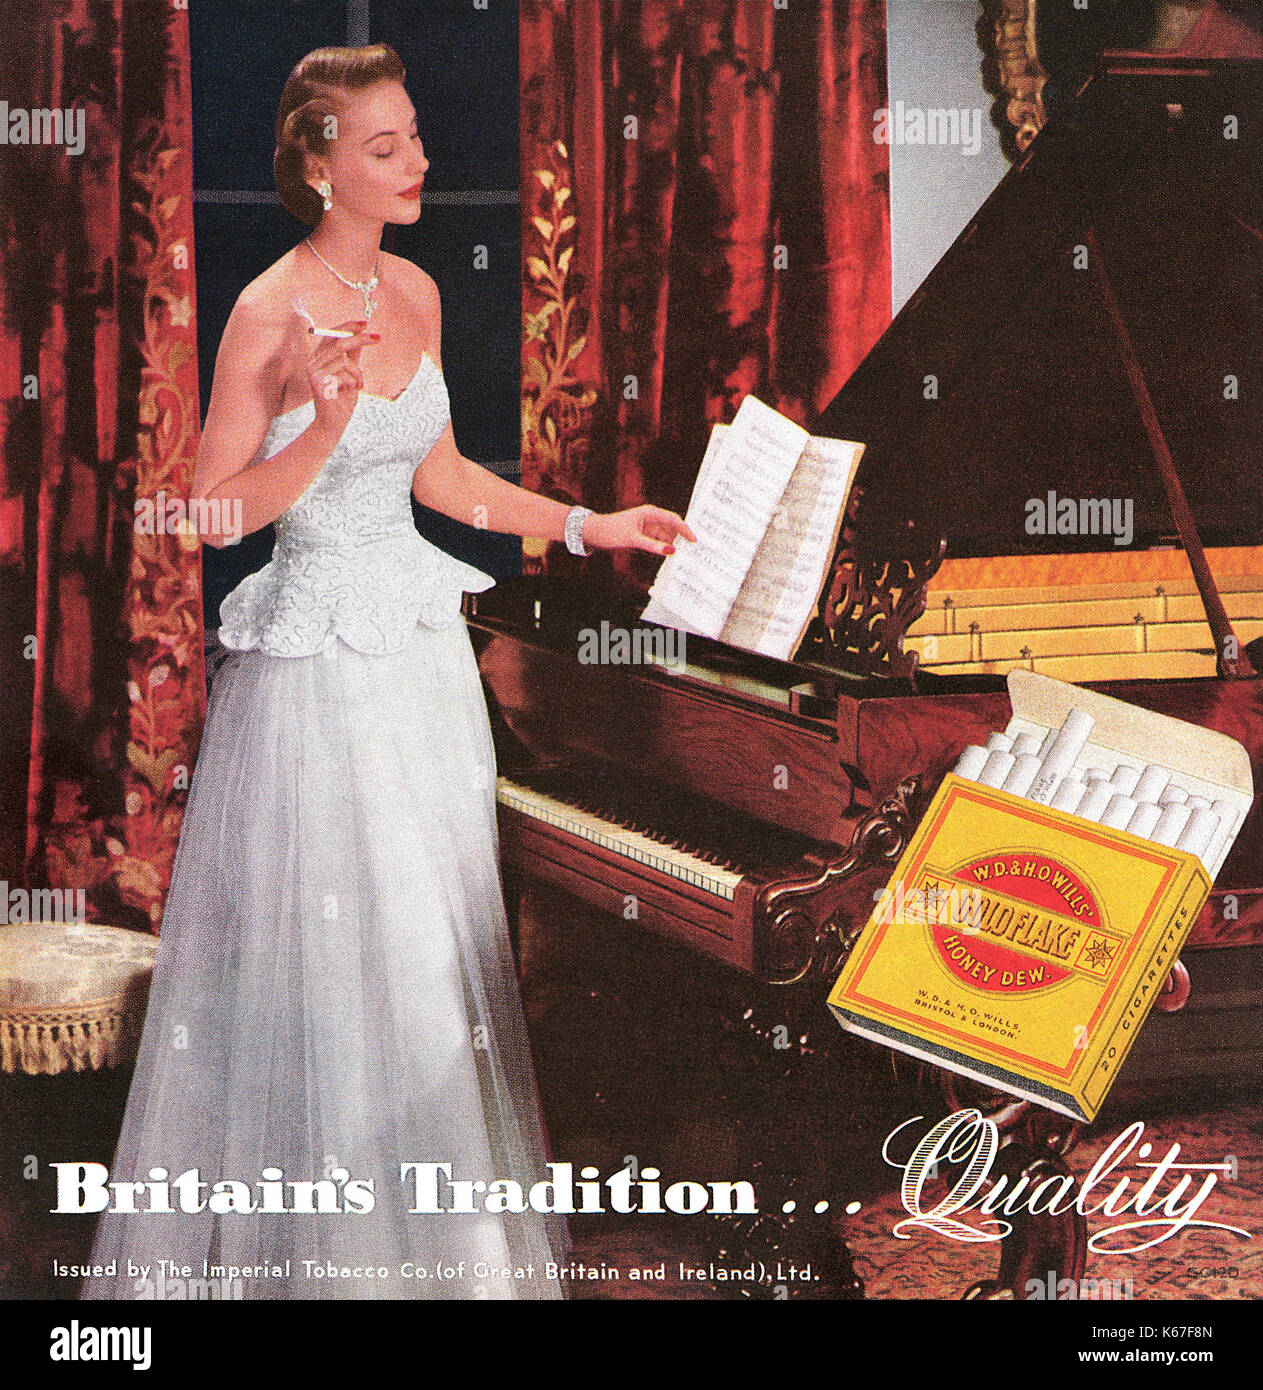 1949 British advertisement for W.D & H.O. Wills Gold Flake cigarettes. - Stock Image